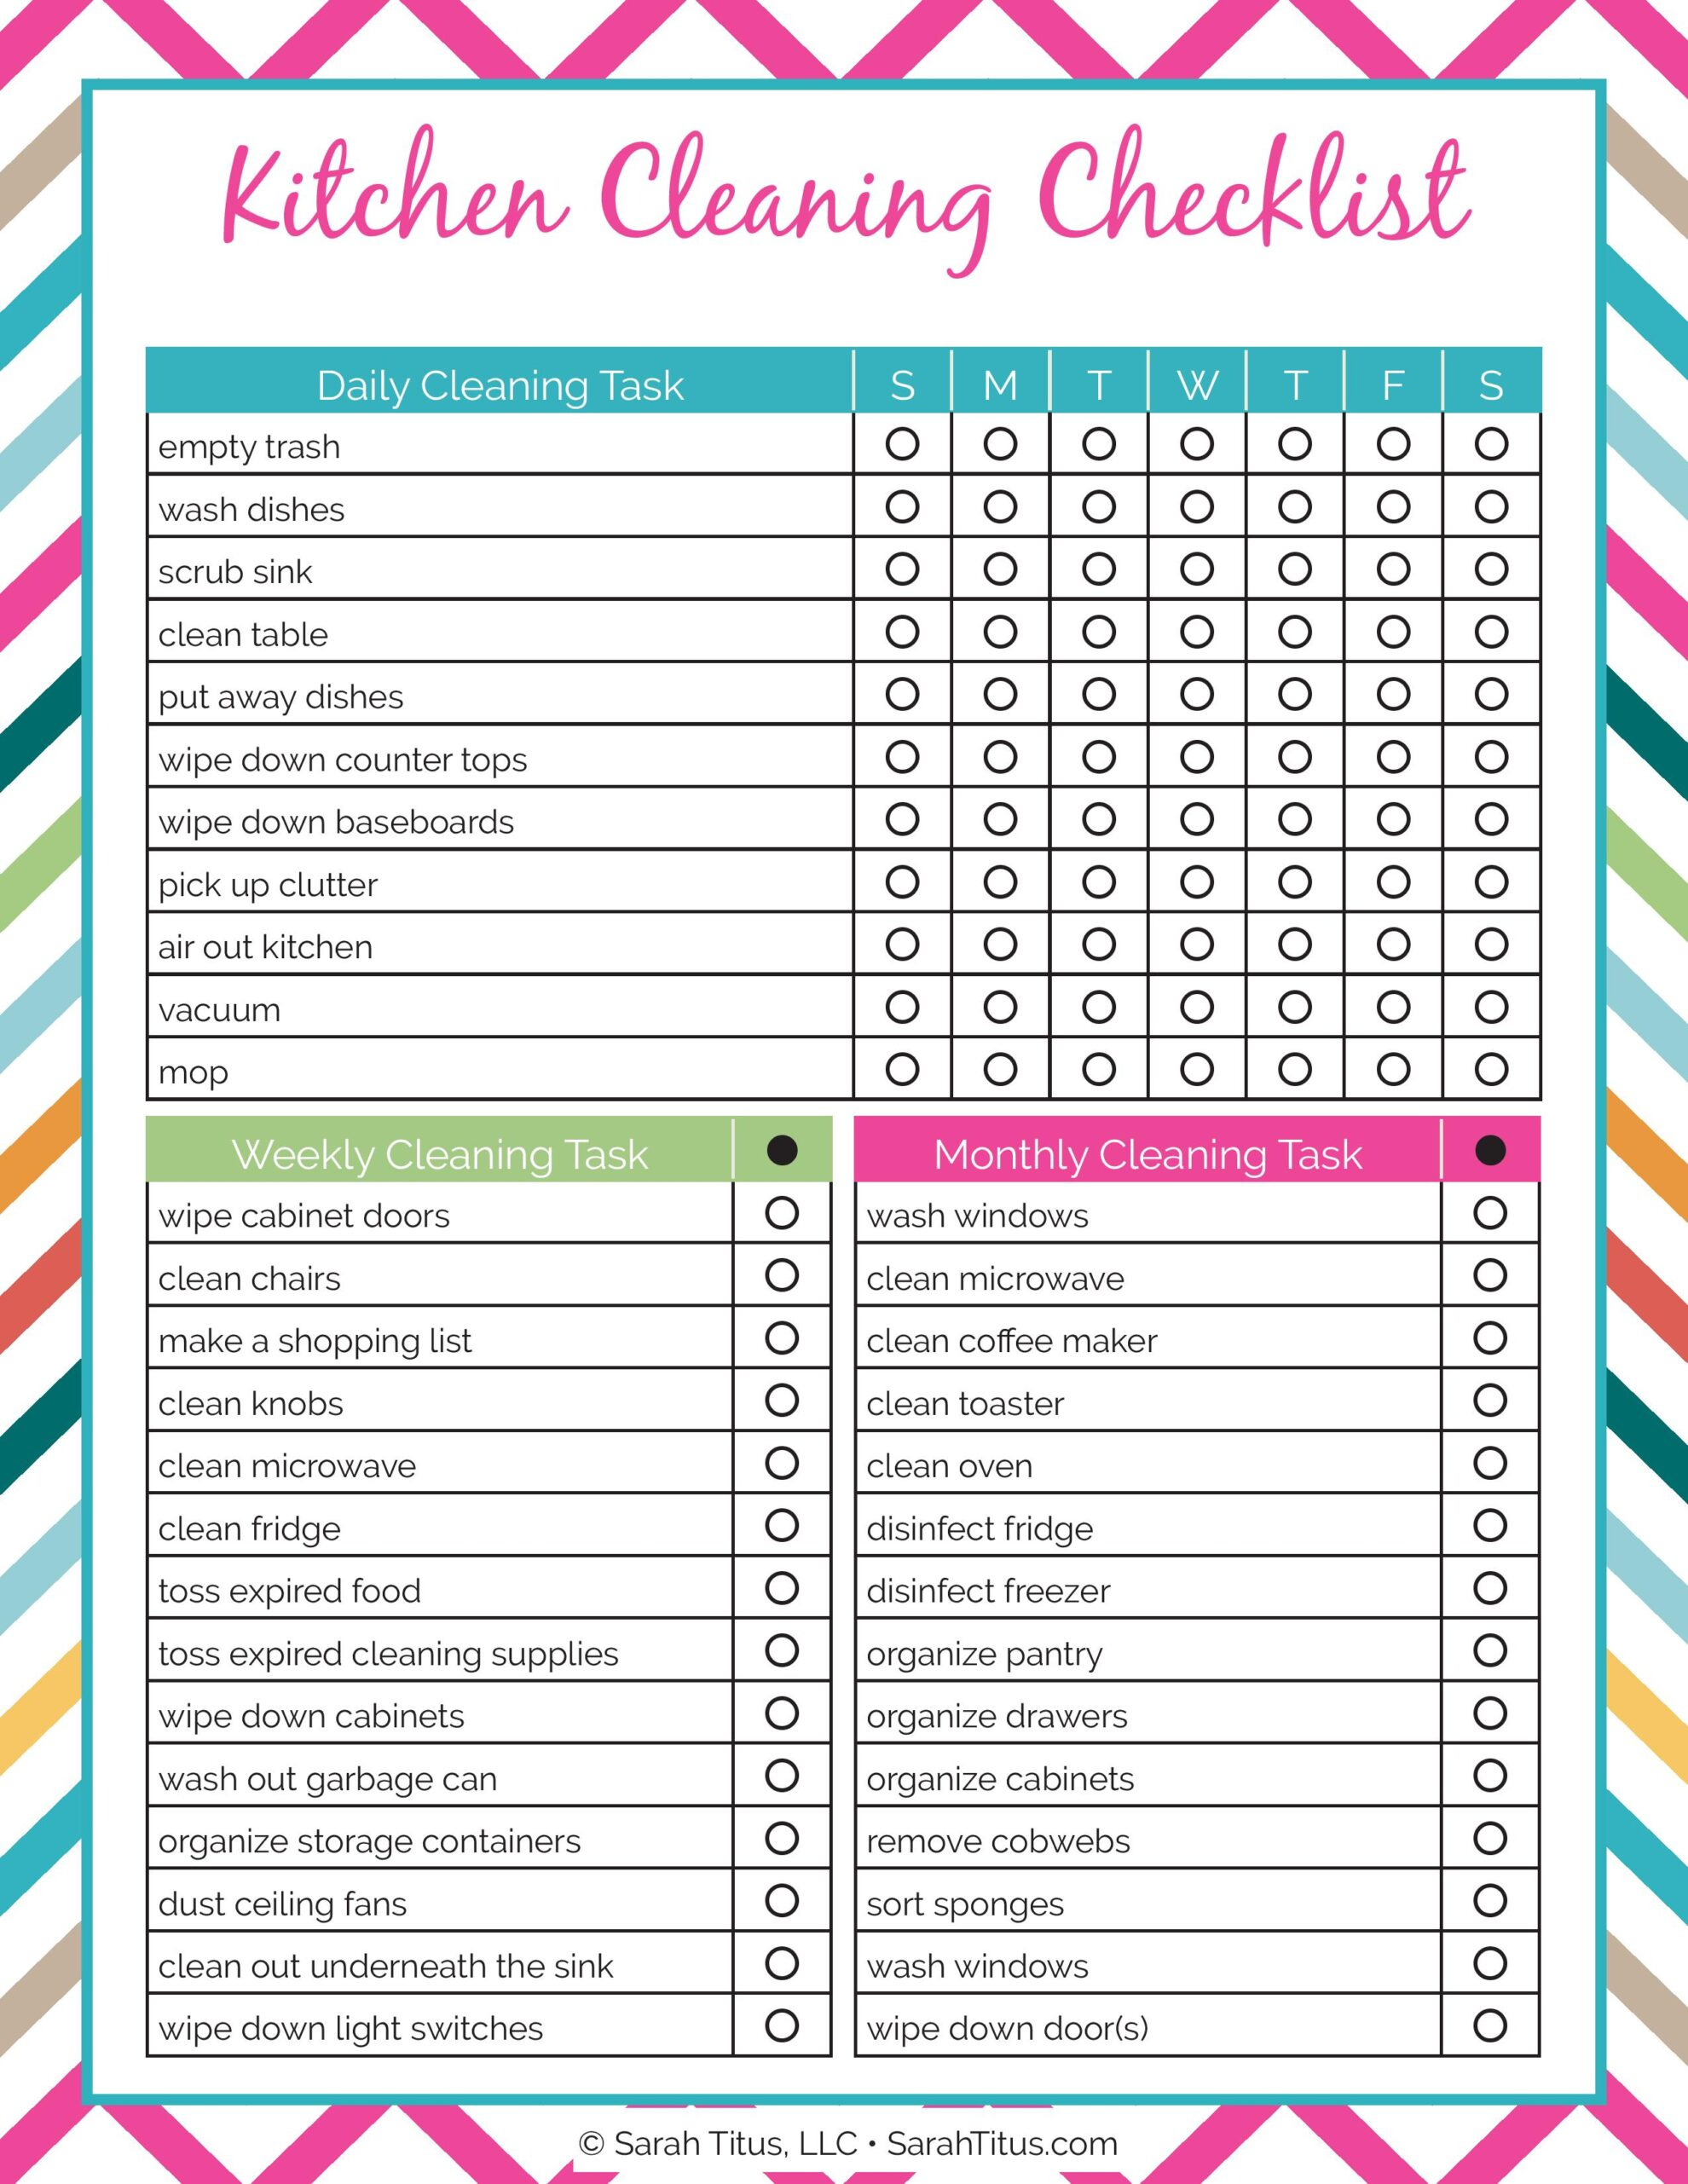 If you're an organization freak like me who loves having everything tidy, this kitchen cleaning checklist will be so helpful! #kitchencleaningchecklist